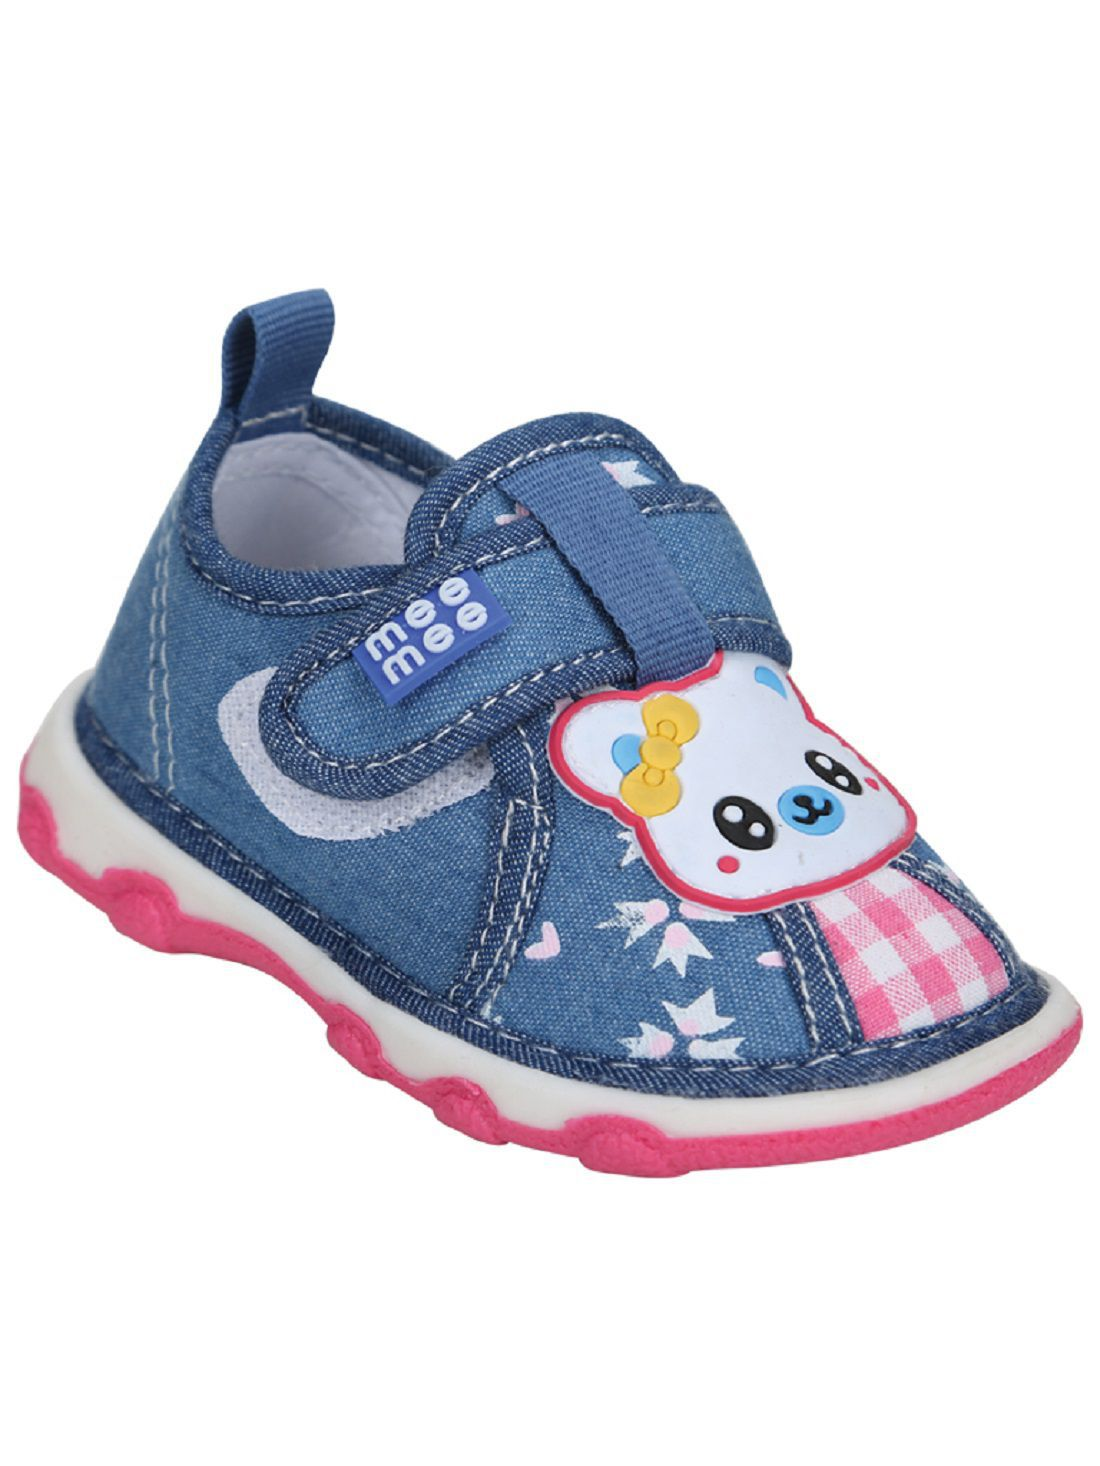 Mee Mee First Walk Baby Shoes with Chu Chu Sound (22 EU, Blue)